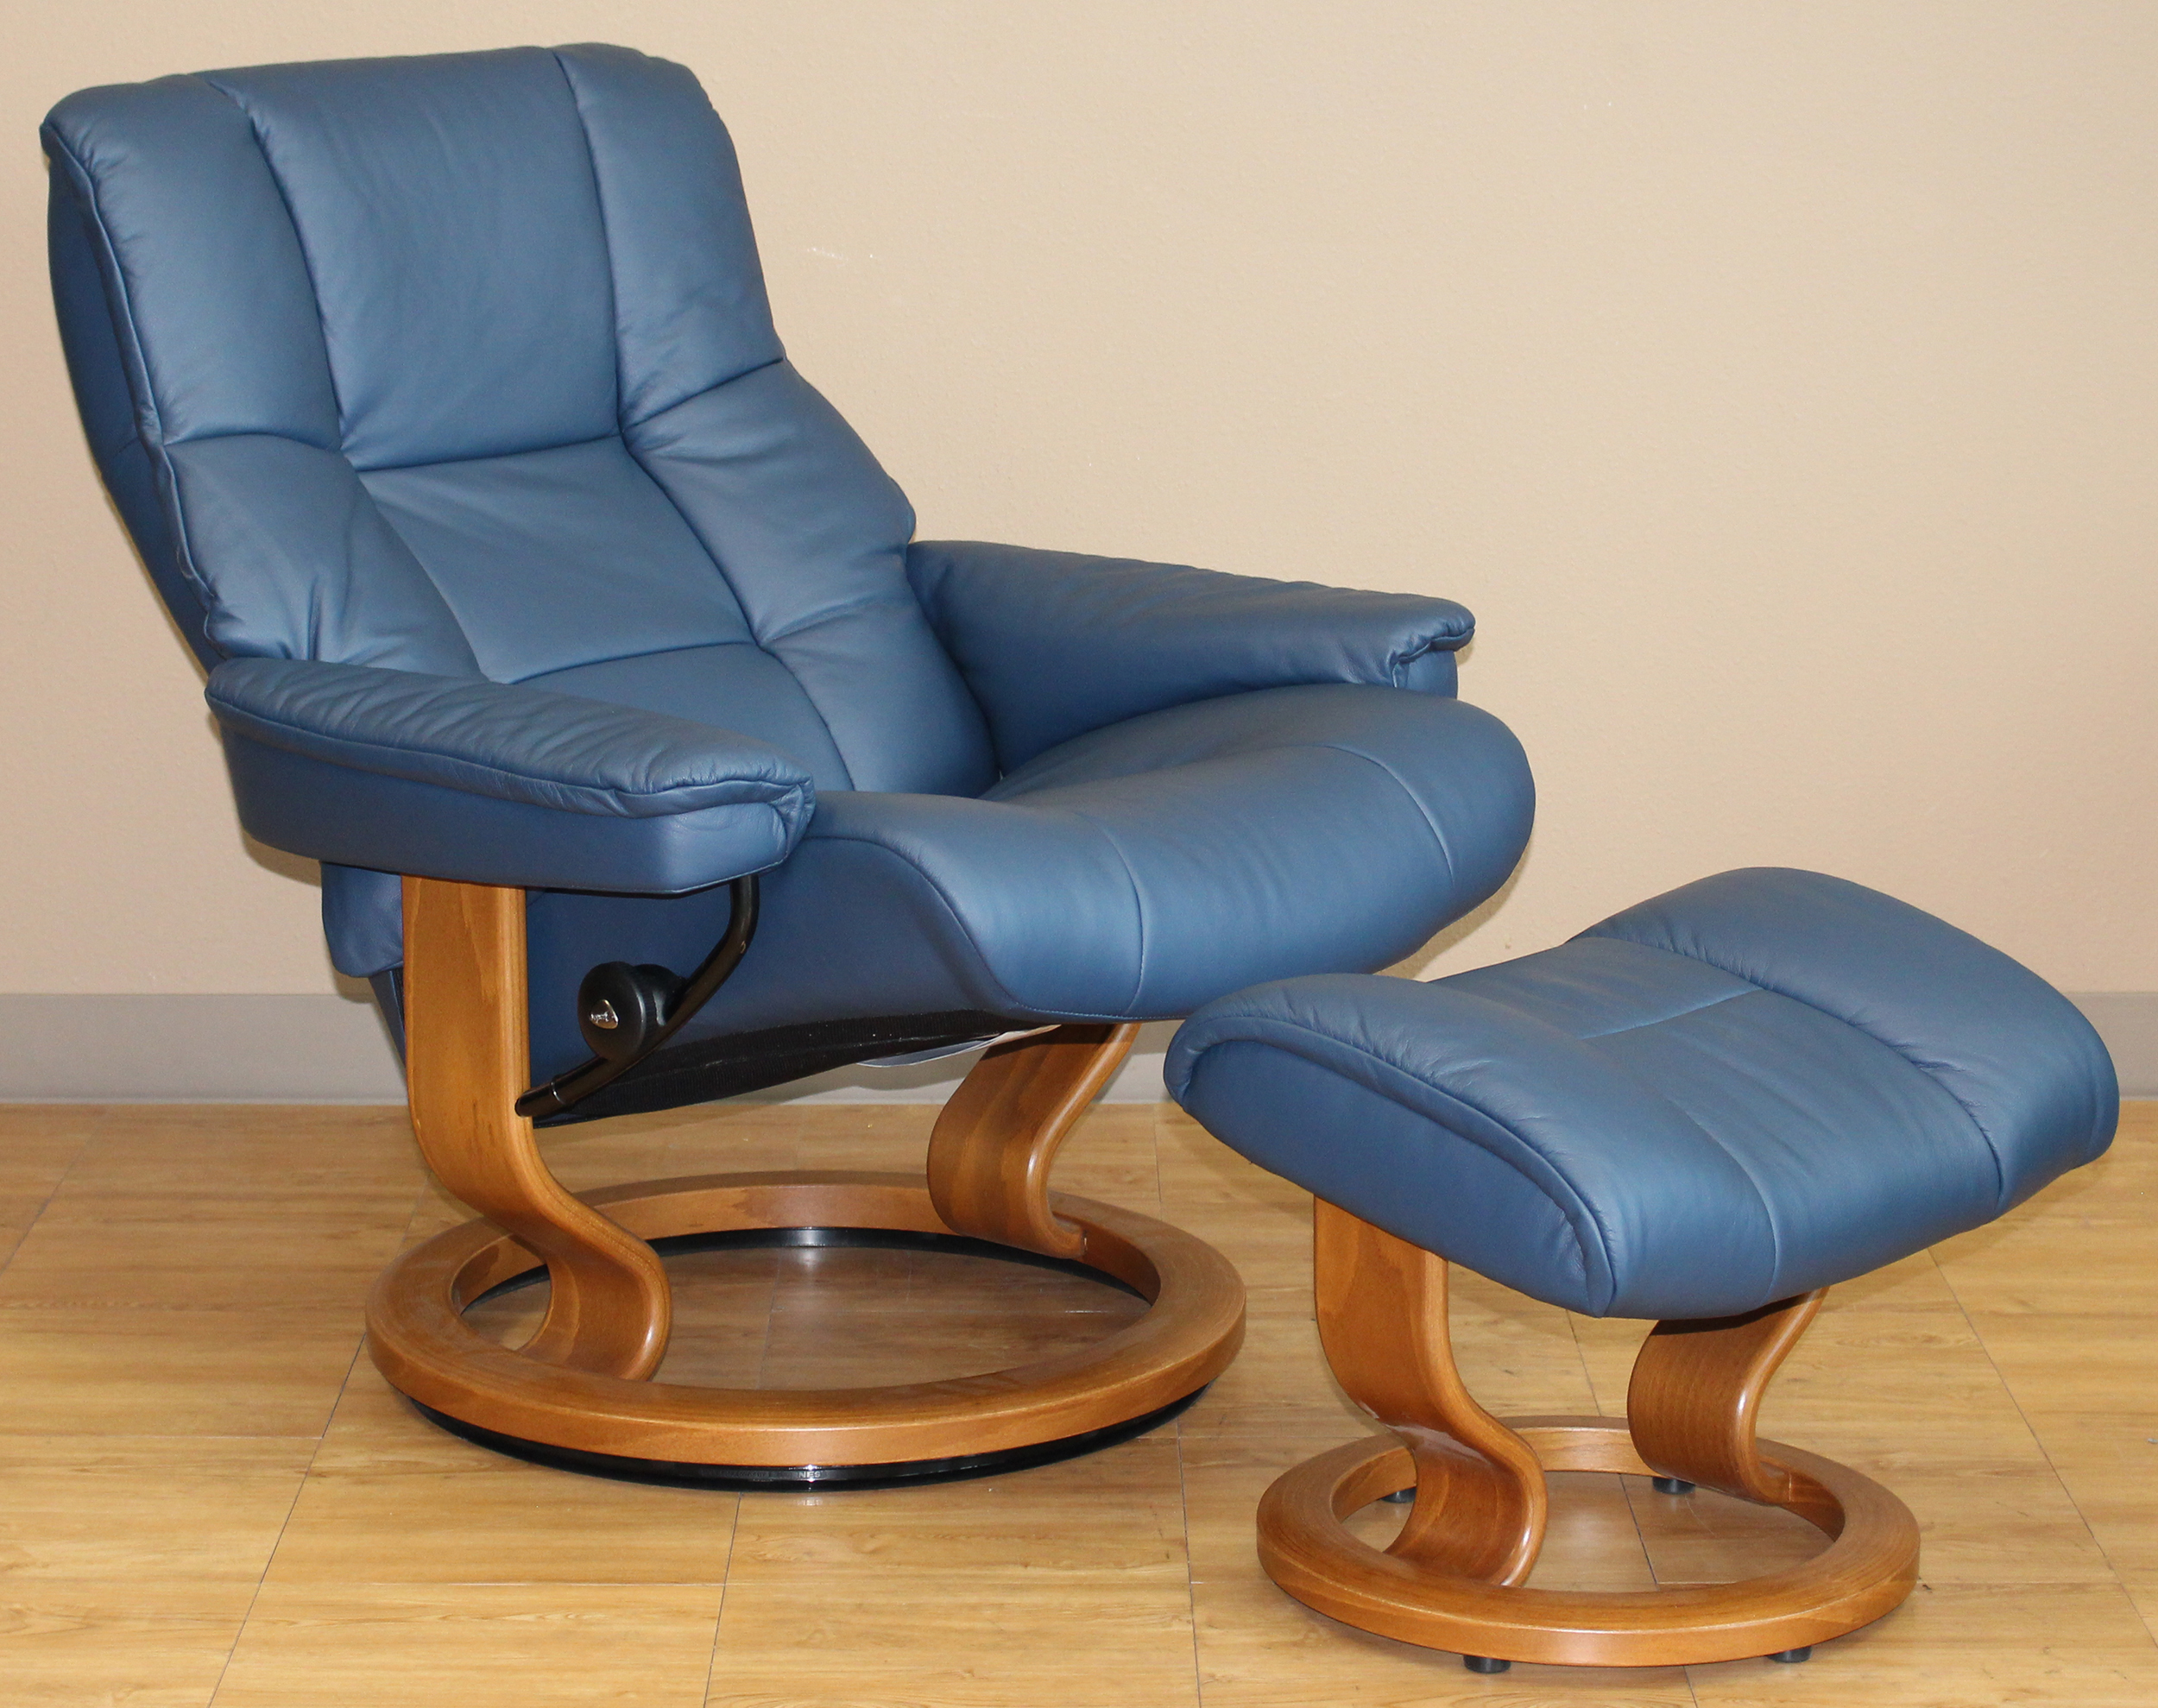 Blue Leather Chair Stressless Mayfair Paloma Oxford Blue Leather Recliner